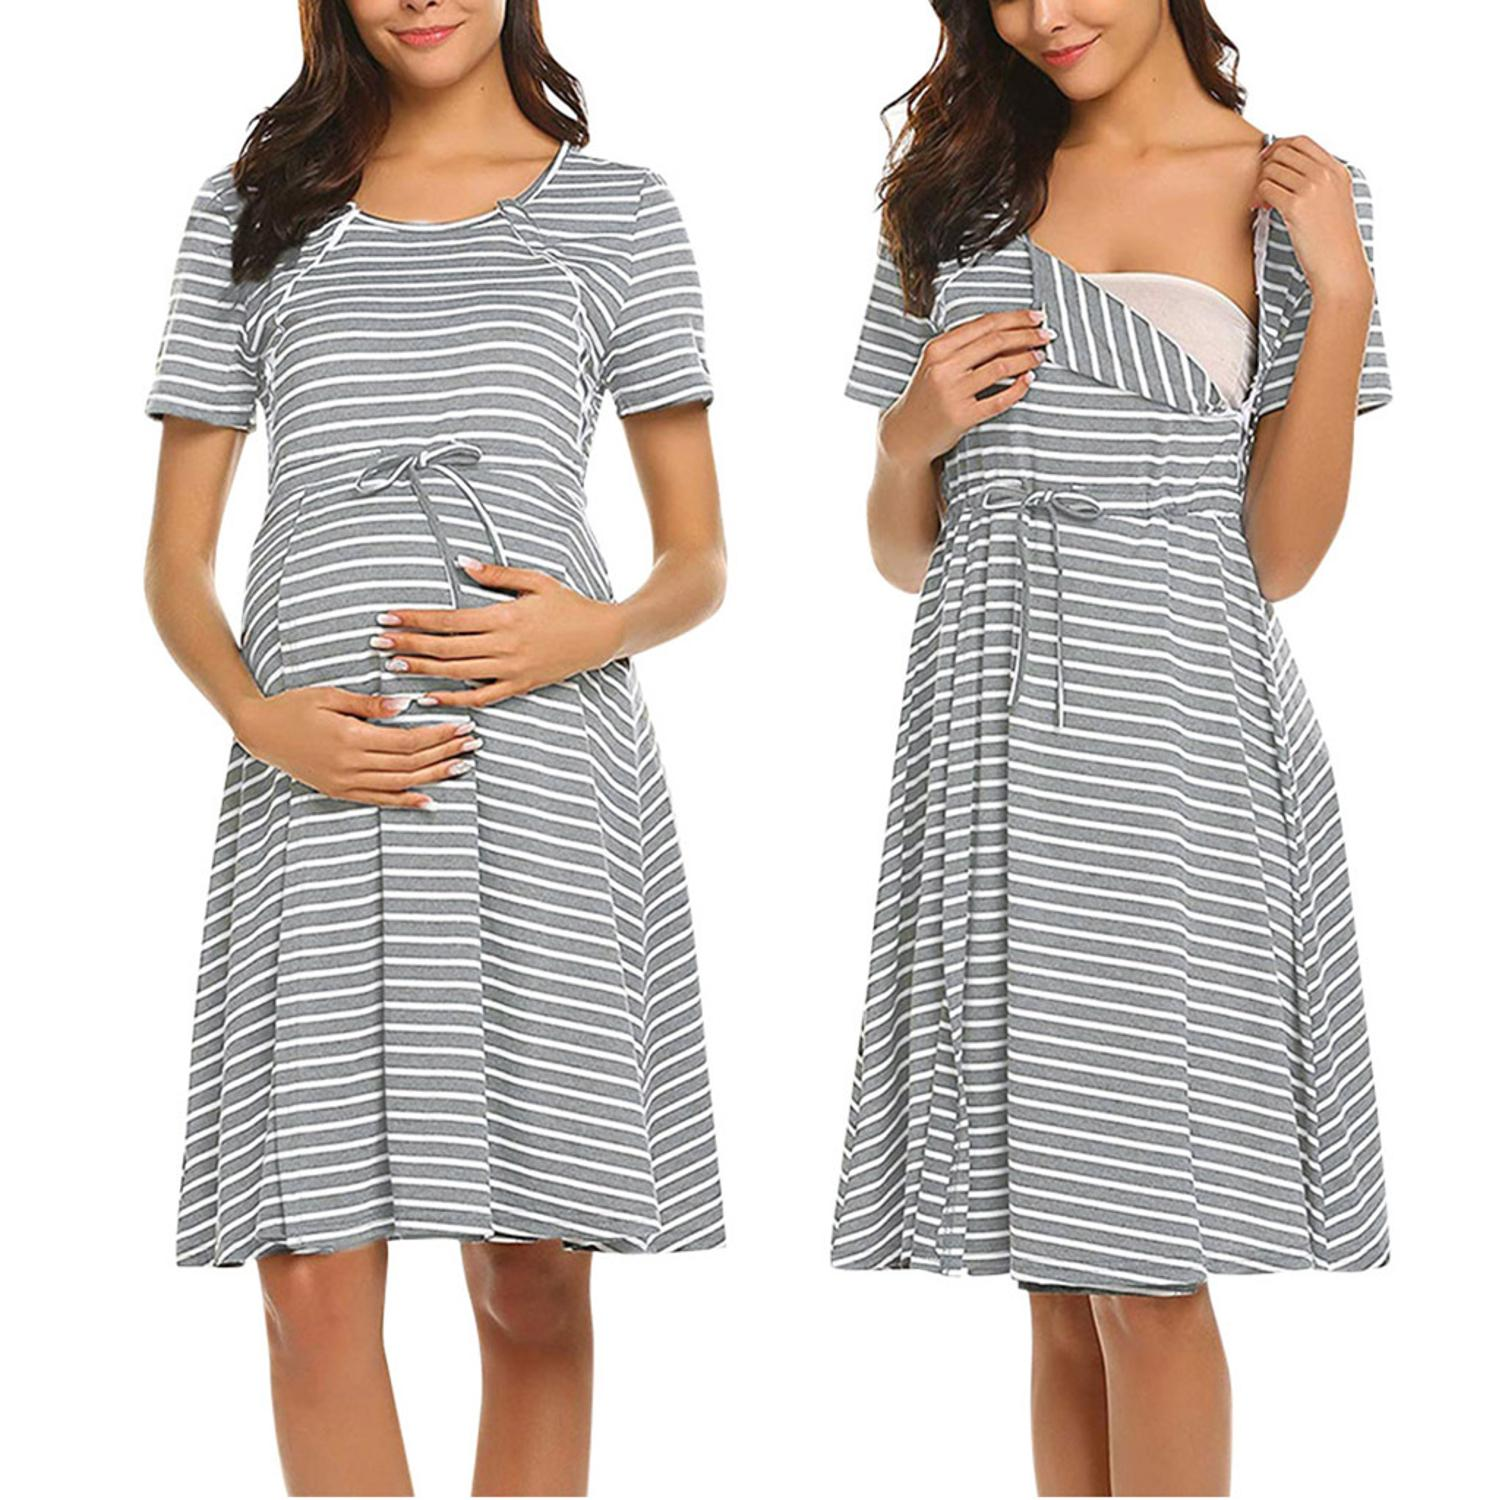 Maternity Hospital Gown Camison Lactancia Summer Casua Dresses Labor And Delivery Gown Striped Pajamas Nursing Nightgown